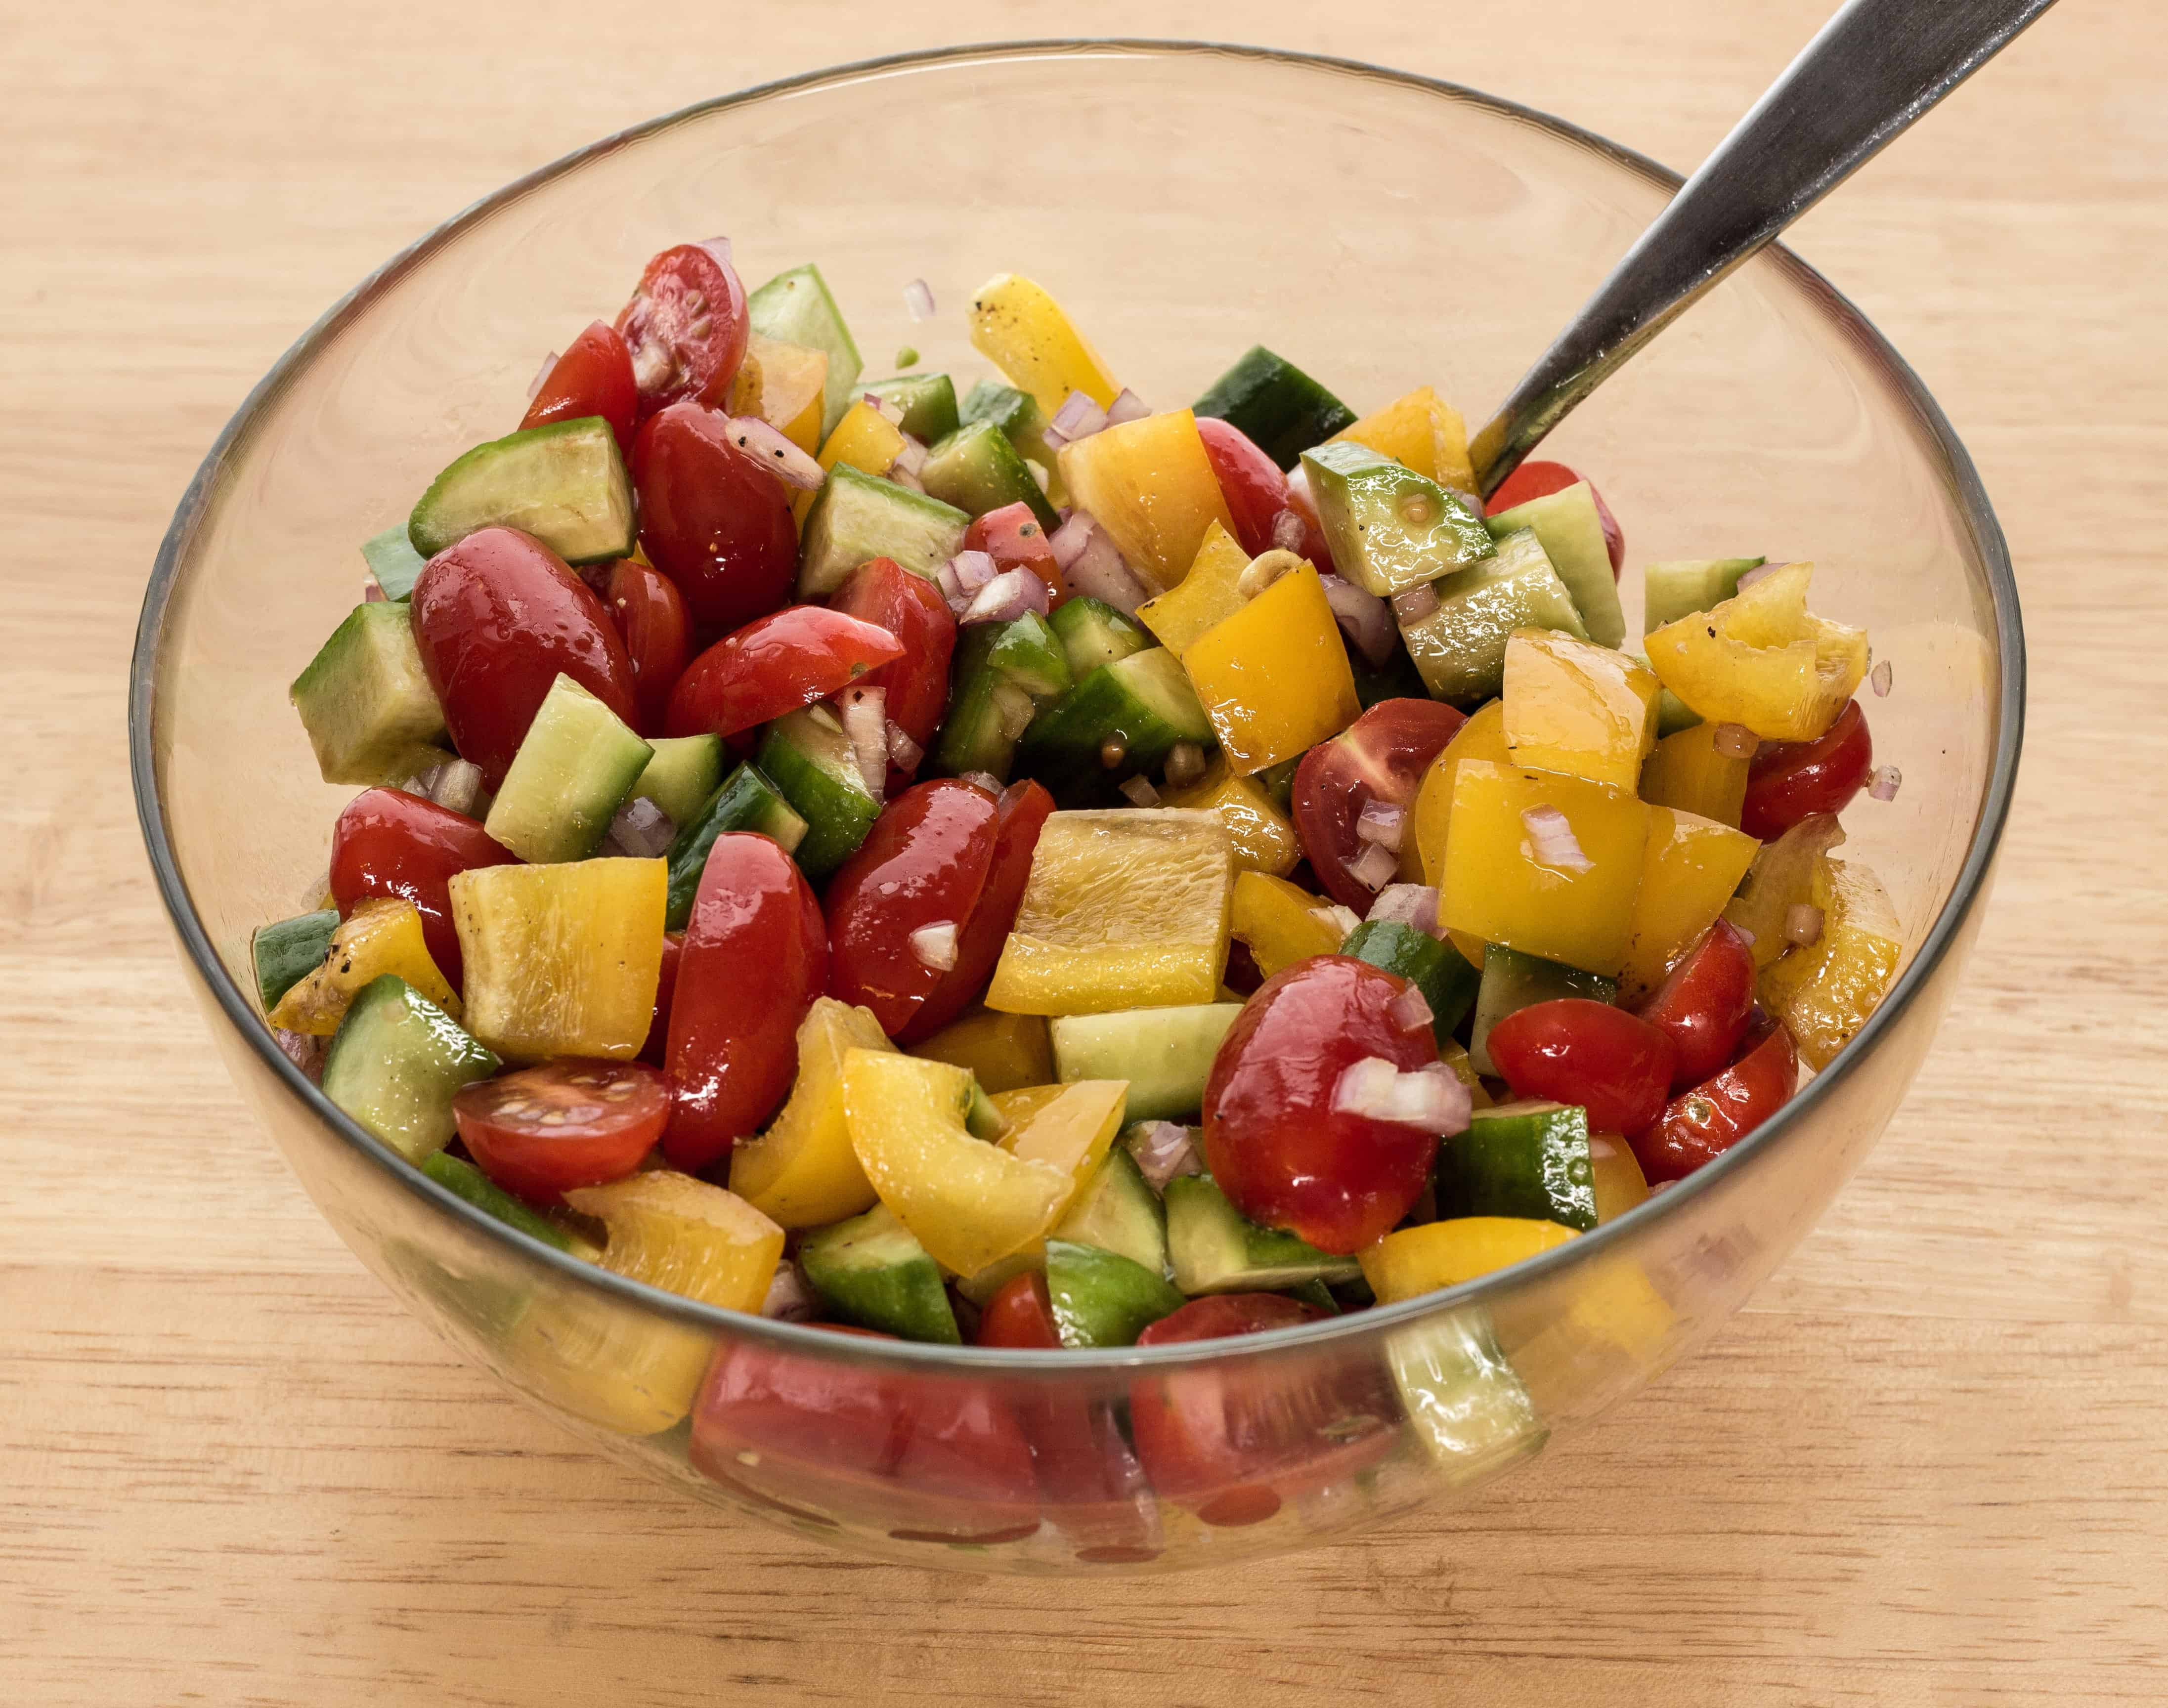 Tomato, Cucumber, and Pepper Salad